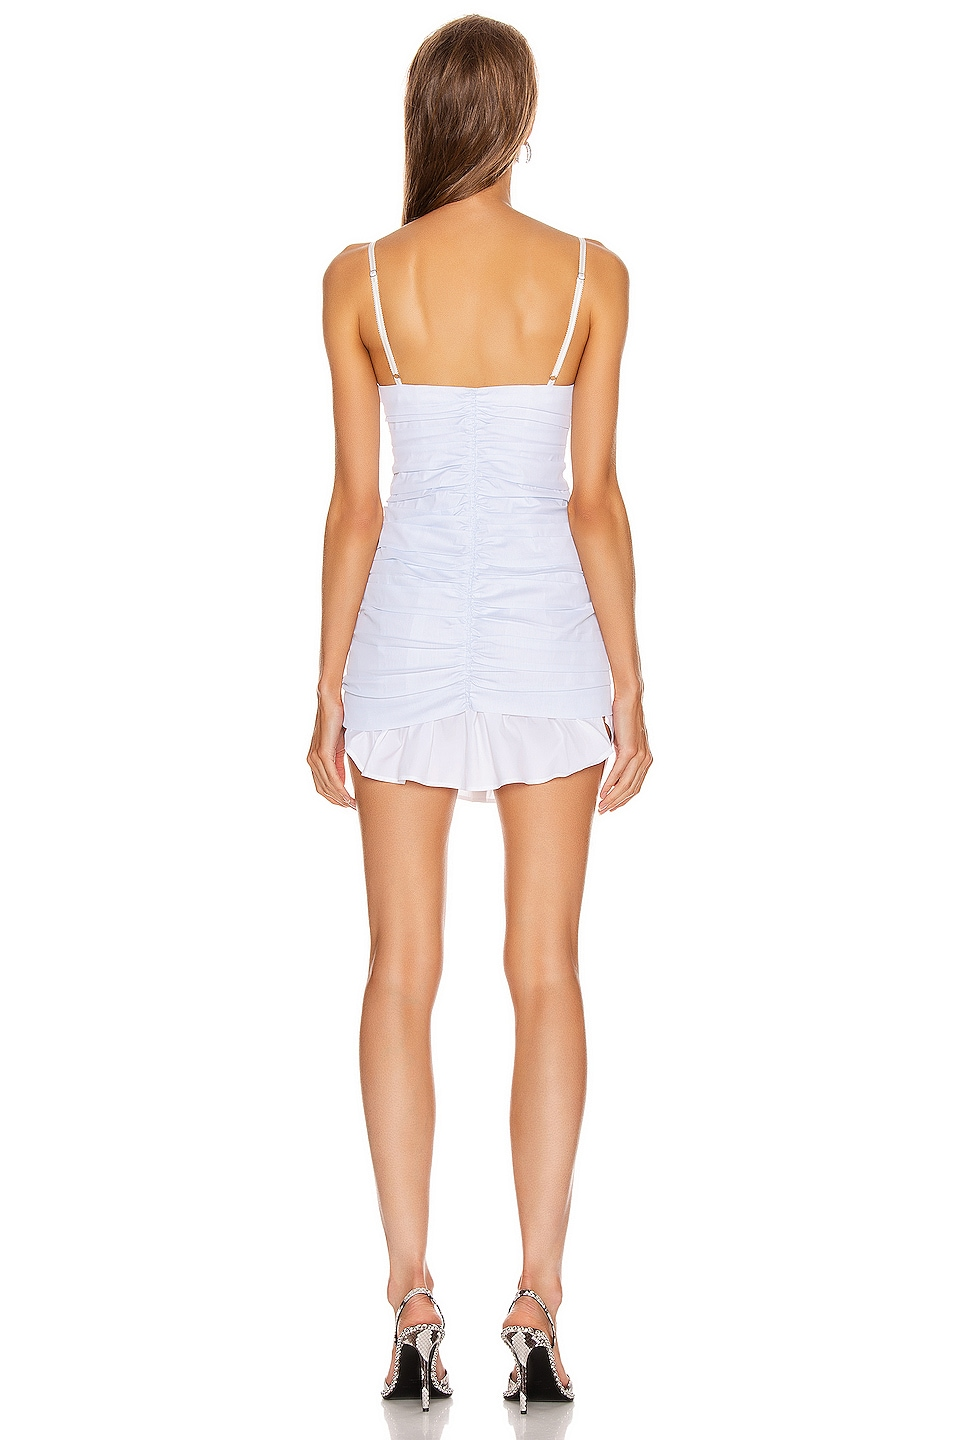 Image 3 of Alexander Wang Ruched Front Zipper Cami Dress in White & Blue Stripe